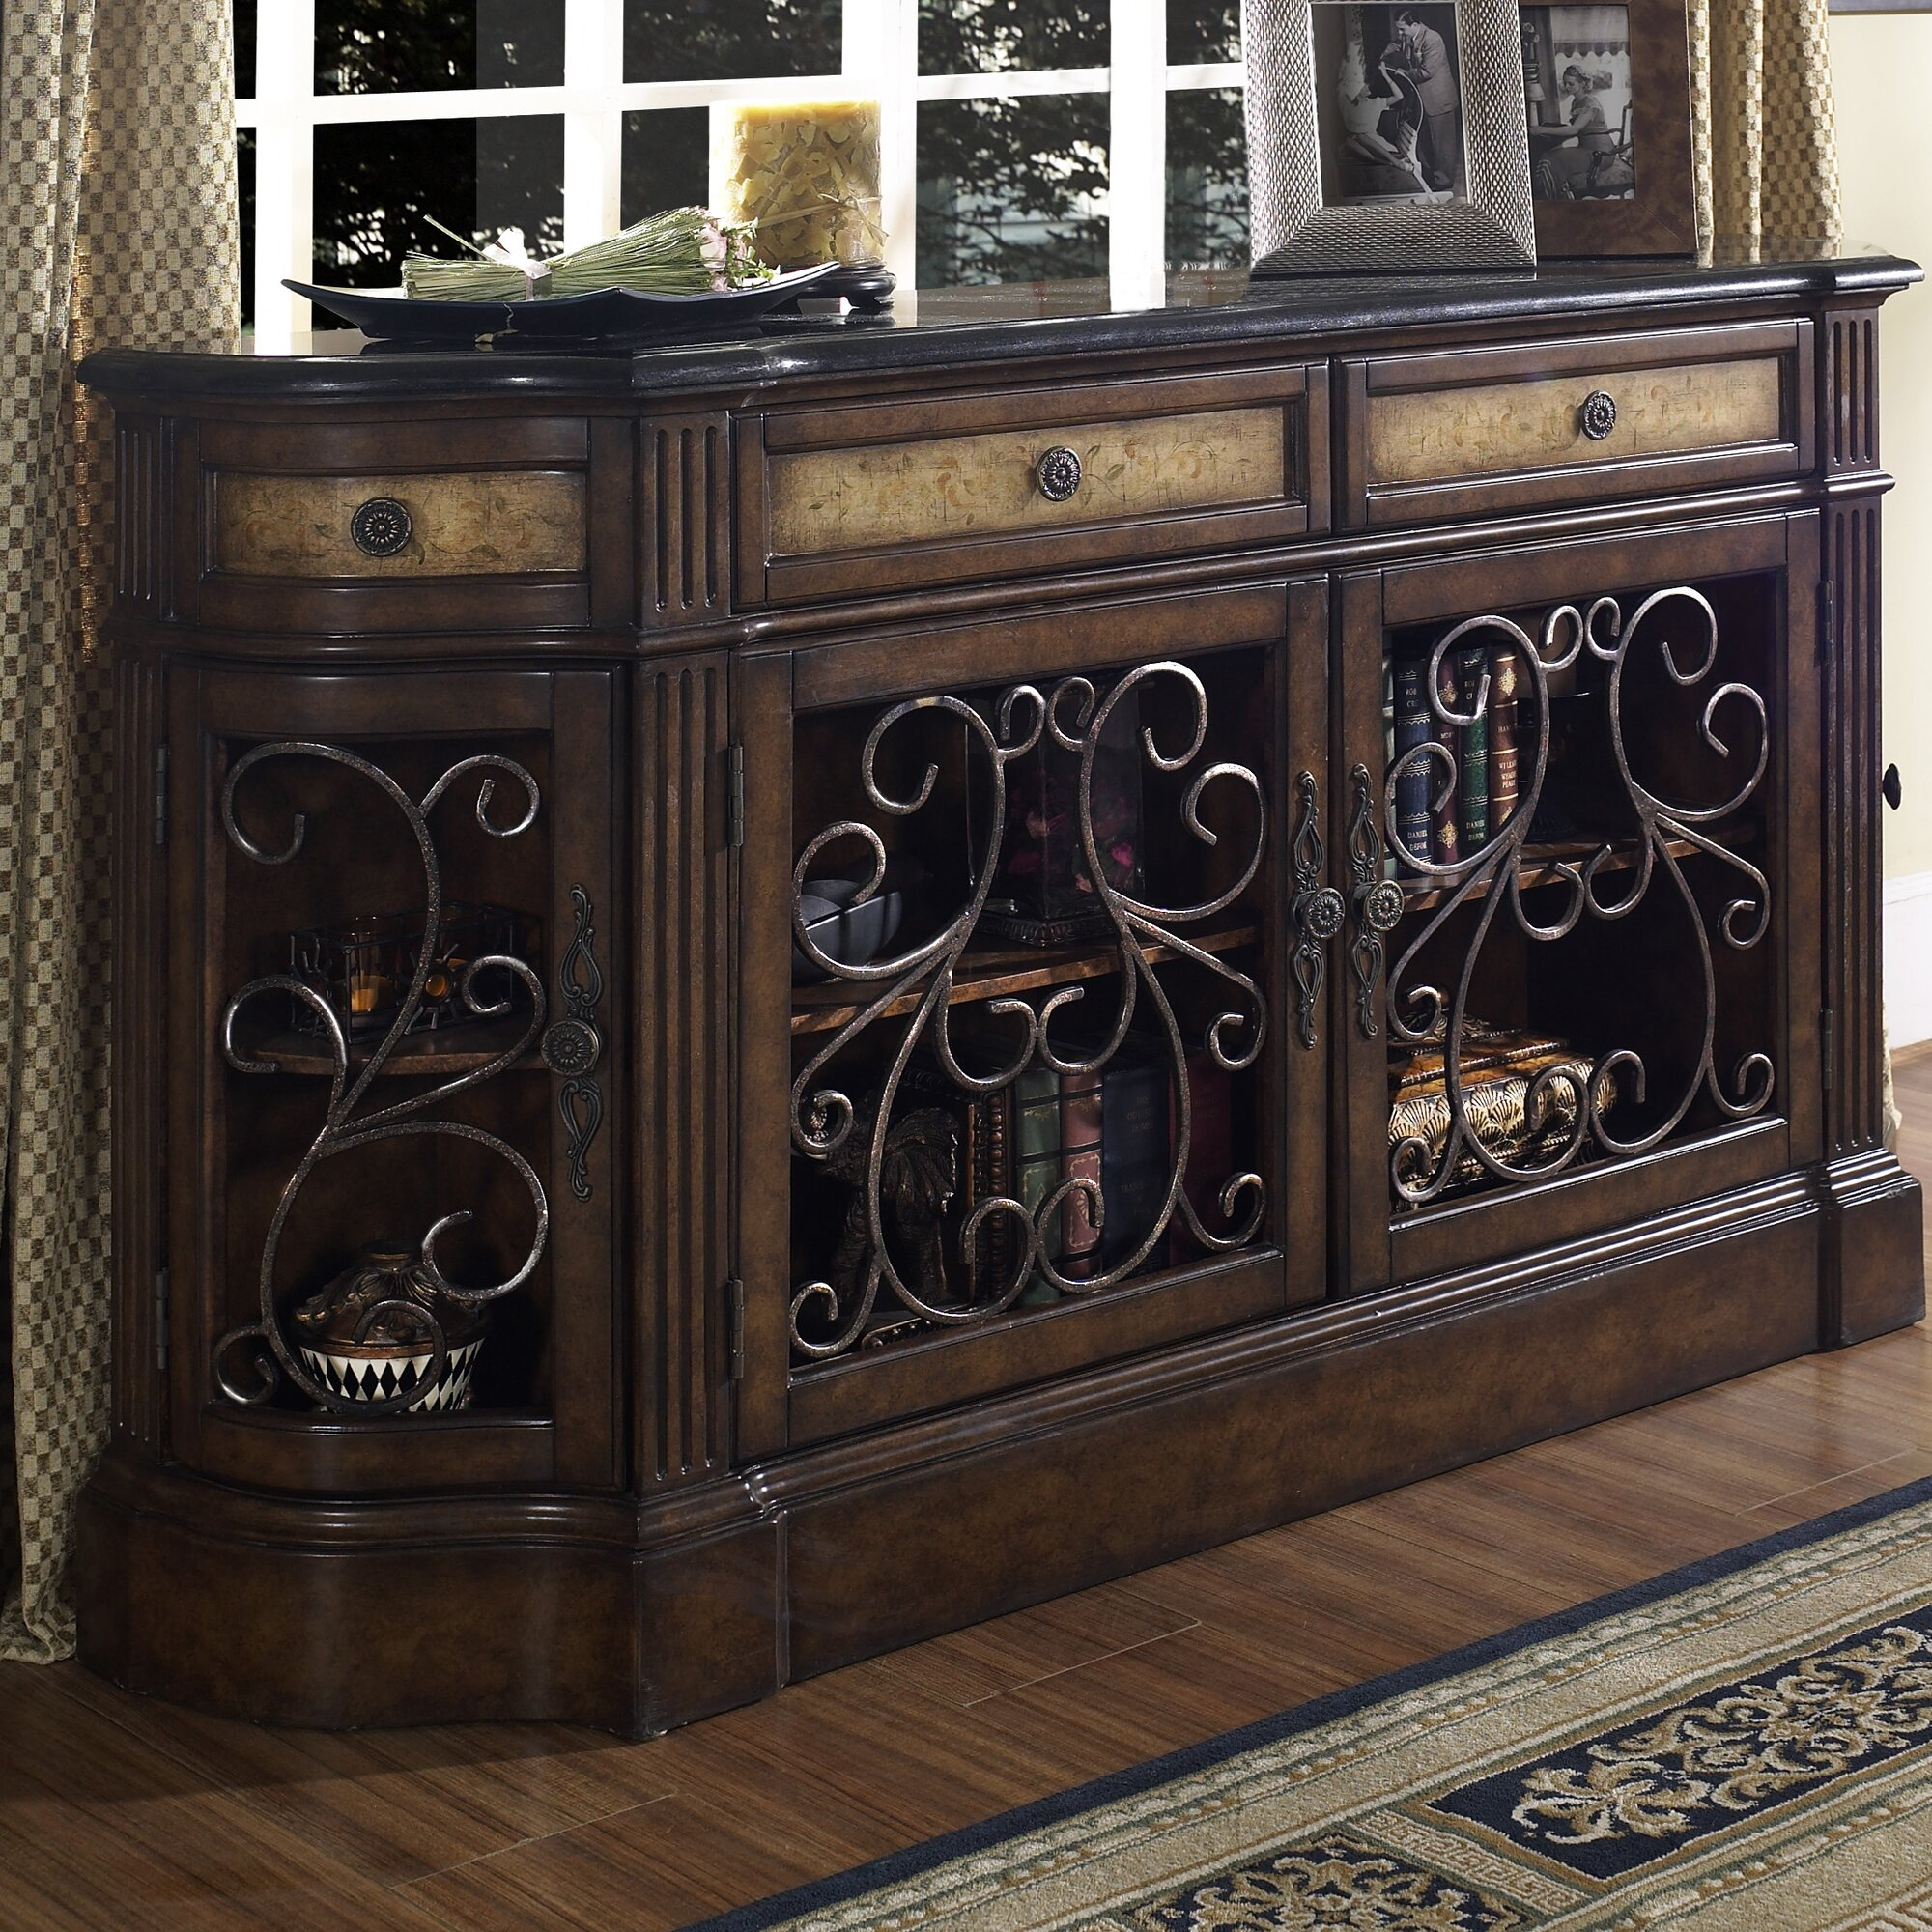 Search For Furniture: Astoria Grand Selside Sideboard & Reviews